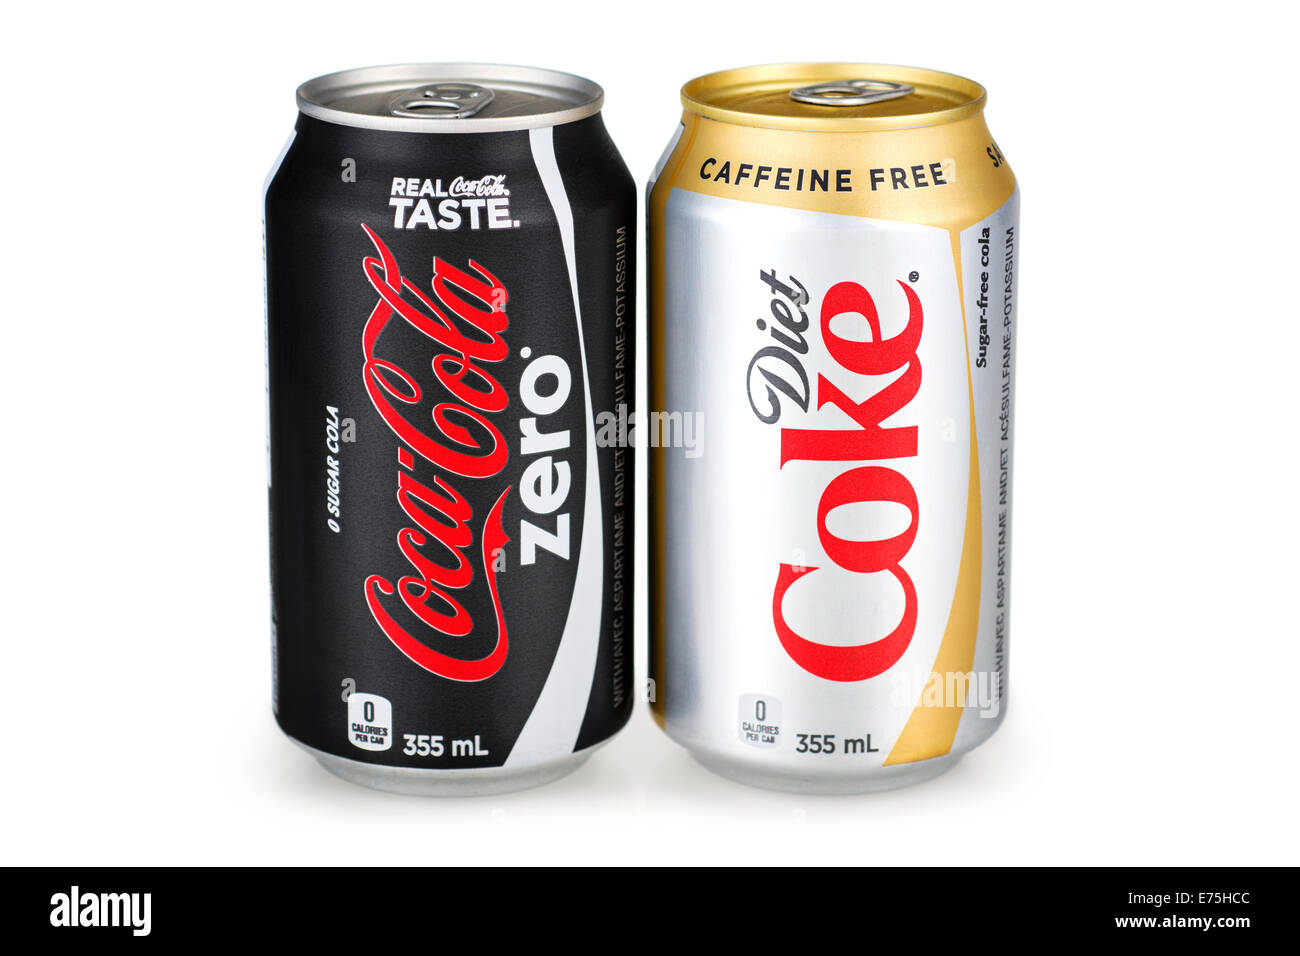 Diet coke can stock photos & diet coke can stock images alamy.